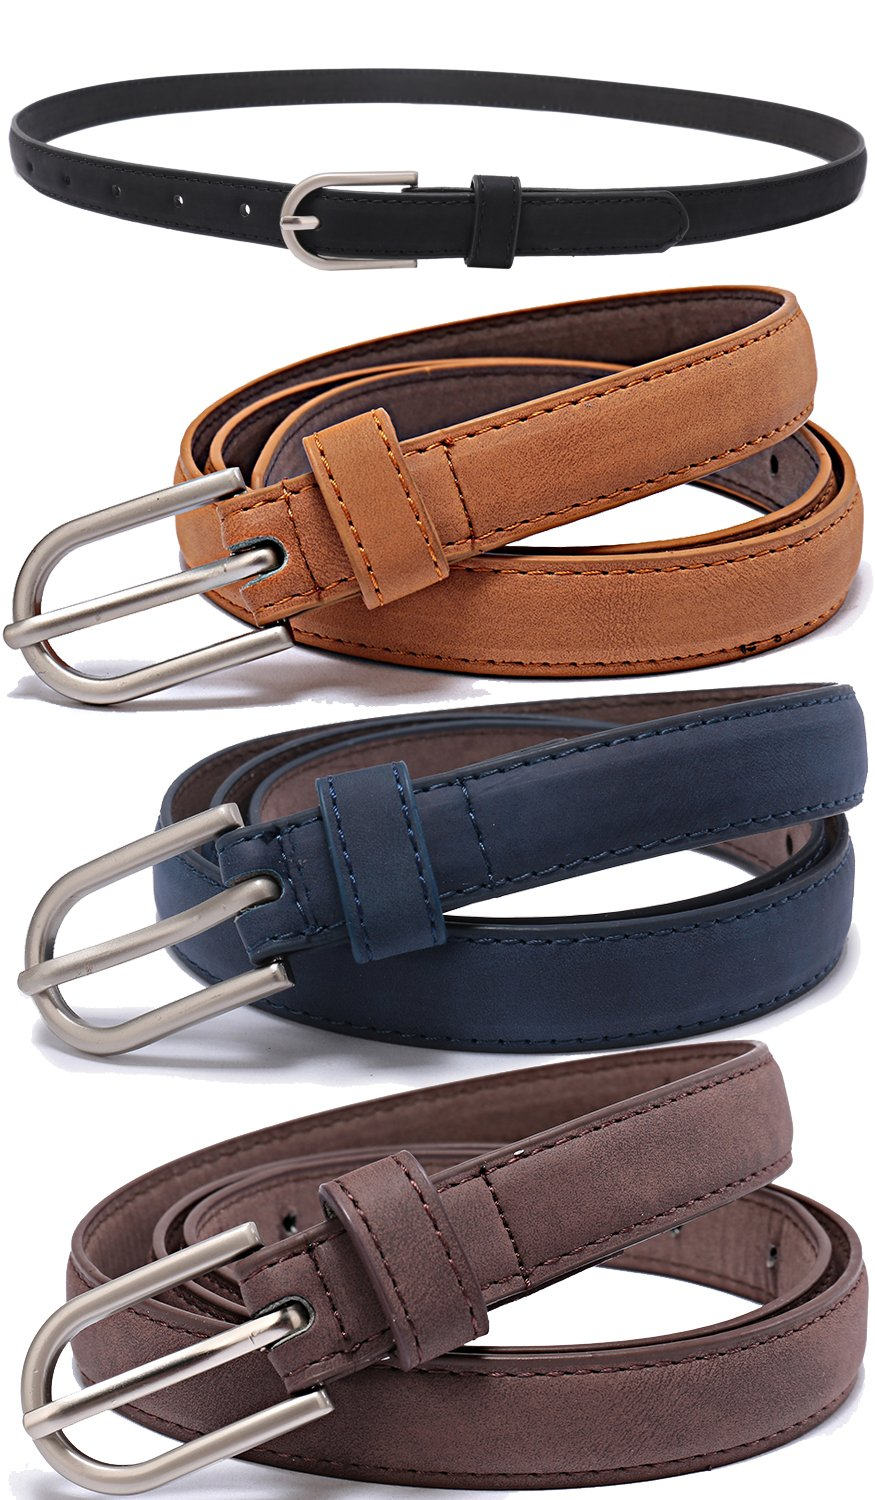 Set of 5 Women's Skinny Leather Belt Solid Color Waist or Hips Ornament 10 Sizes (30-32, Set of black blue brown coffee 3/4'' wide)